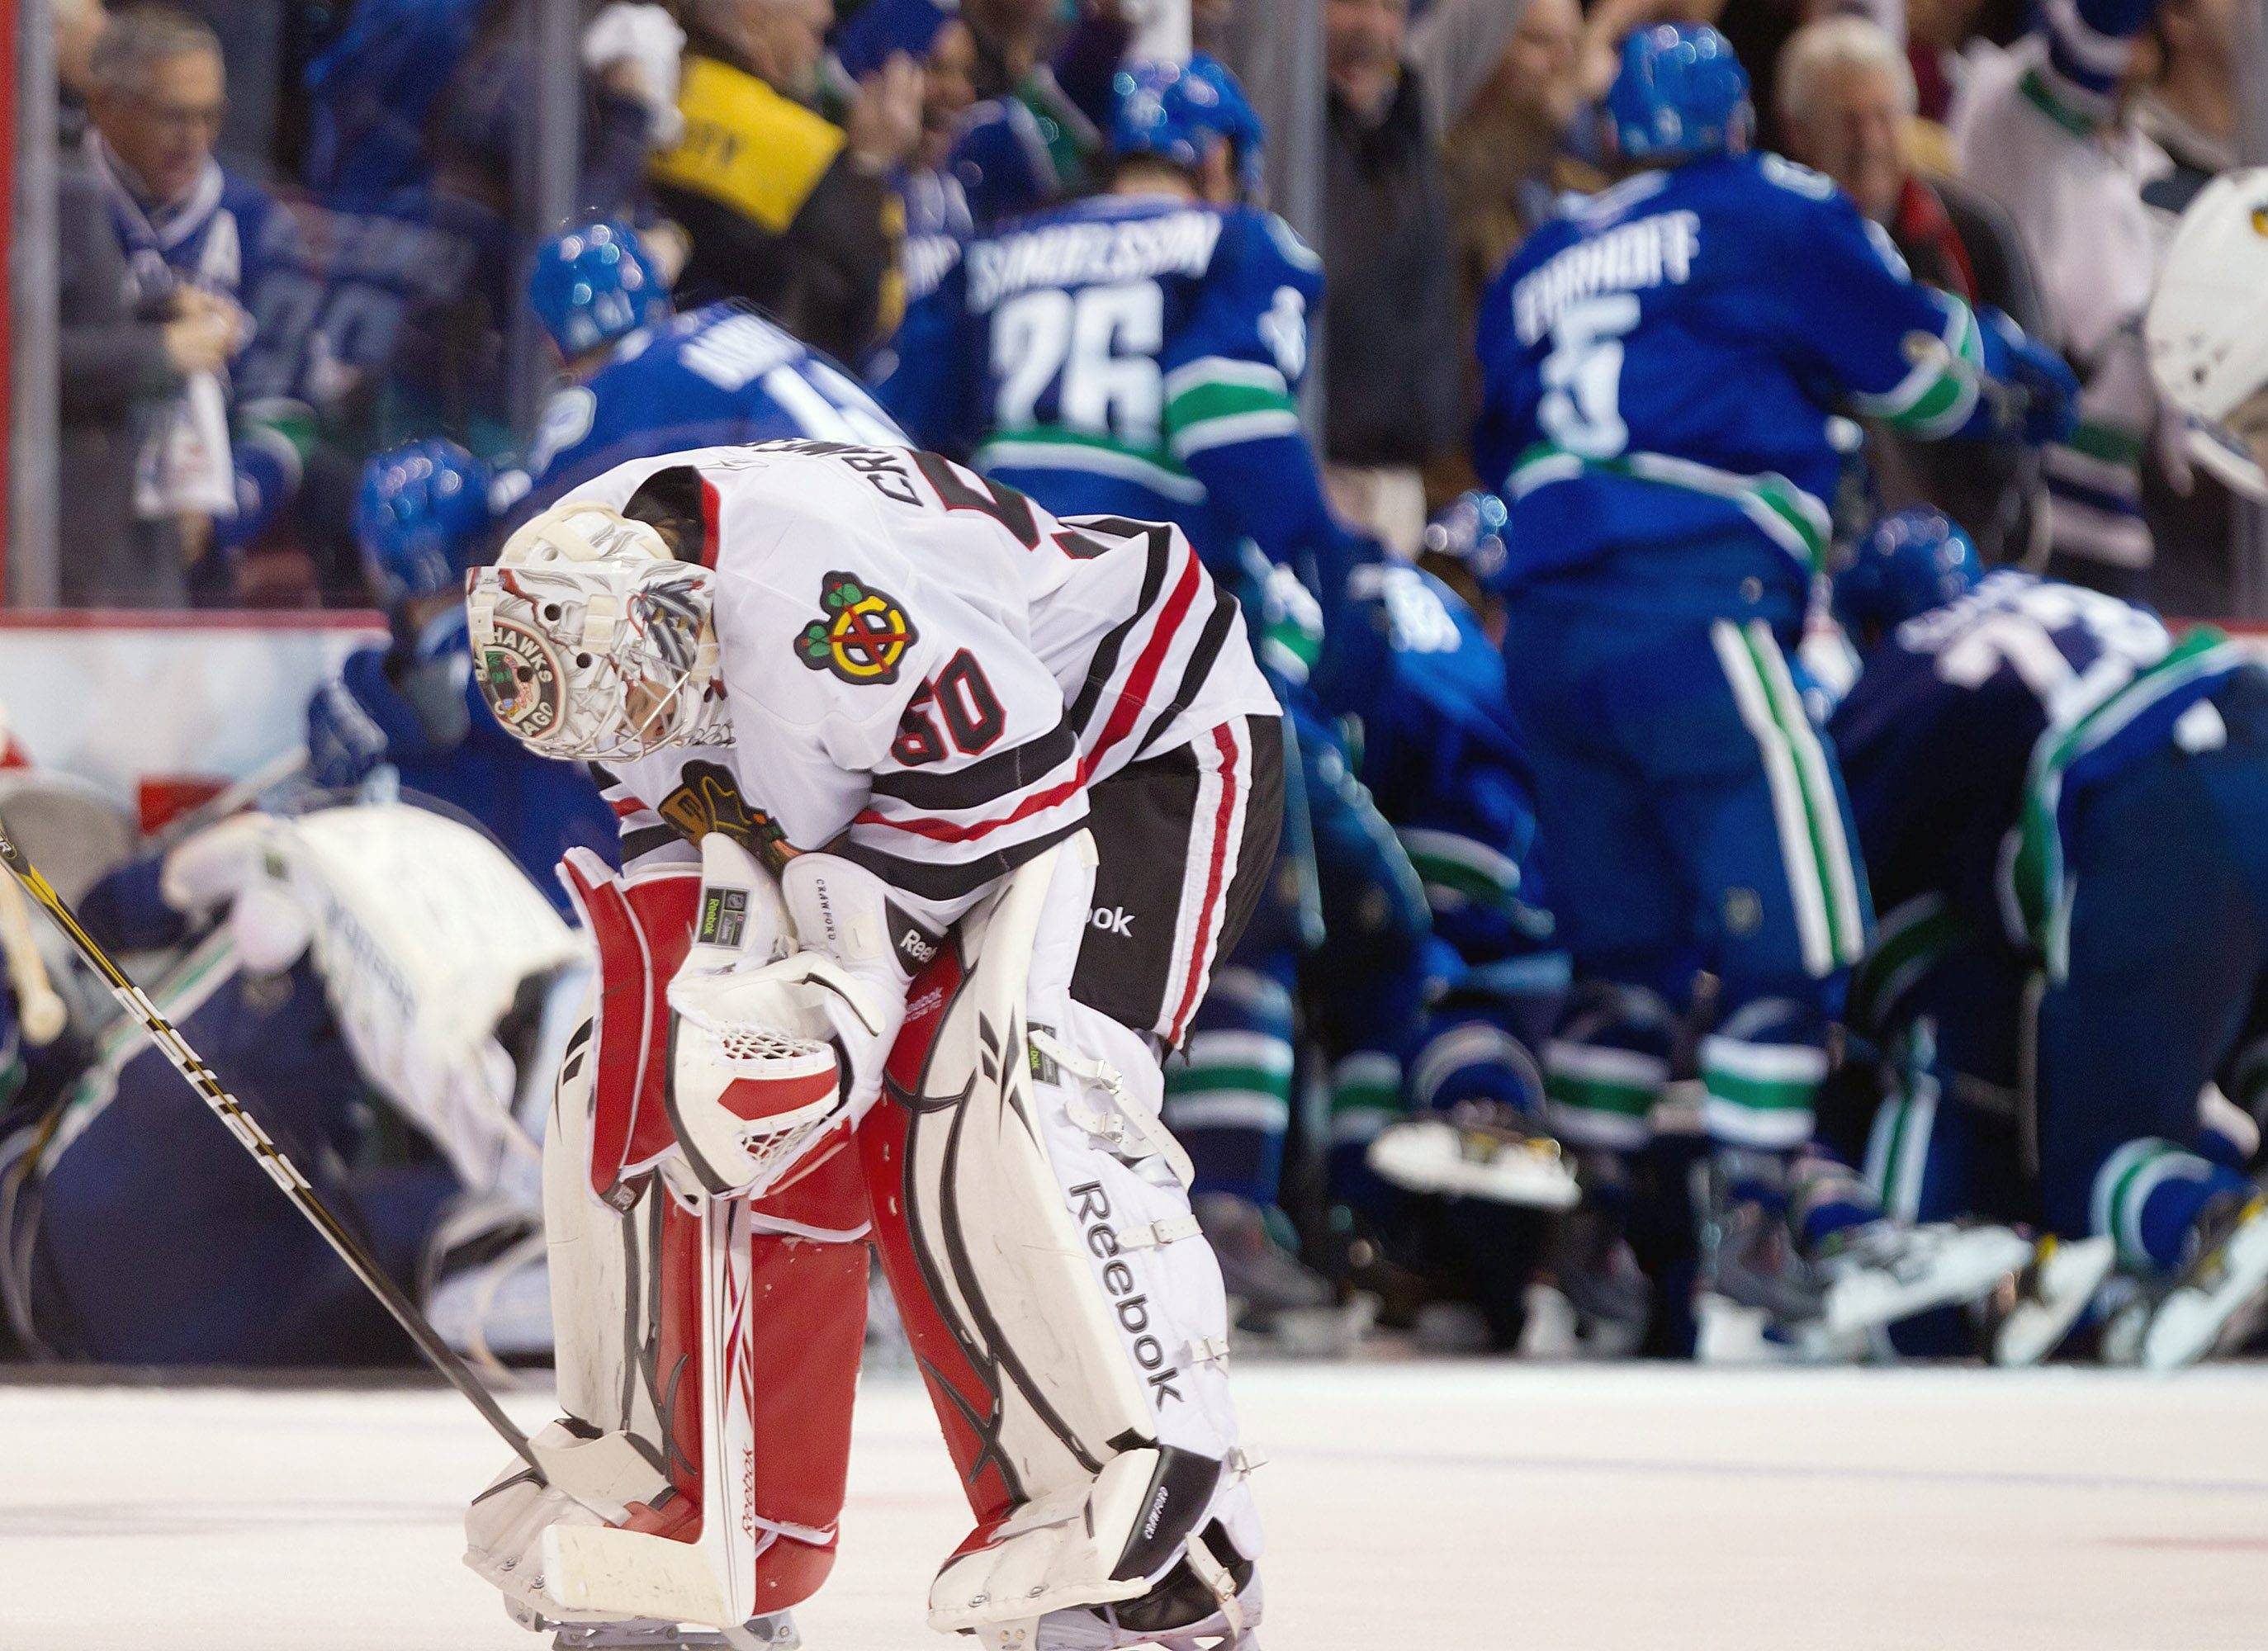 Blackhawks goalie Corey Crawford is all alone after the Hawks lost 2-1 in OT to the Vancouver Canucks   Tuesday night. The Hawks lost the series 4-3.